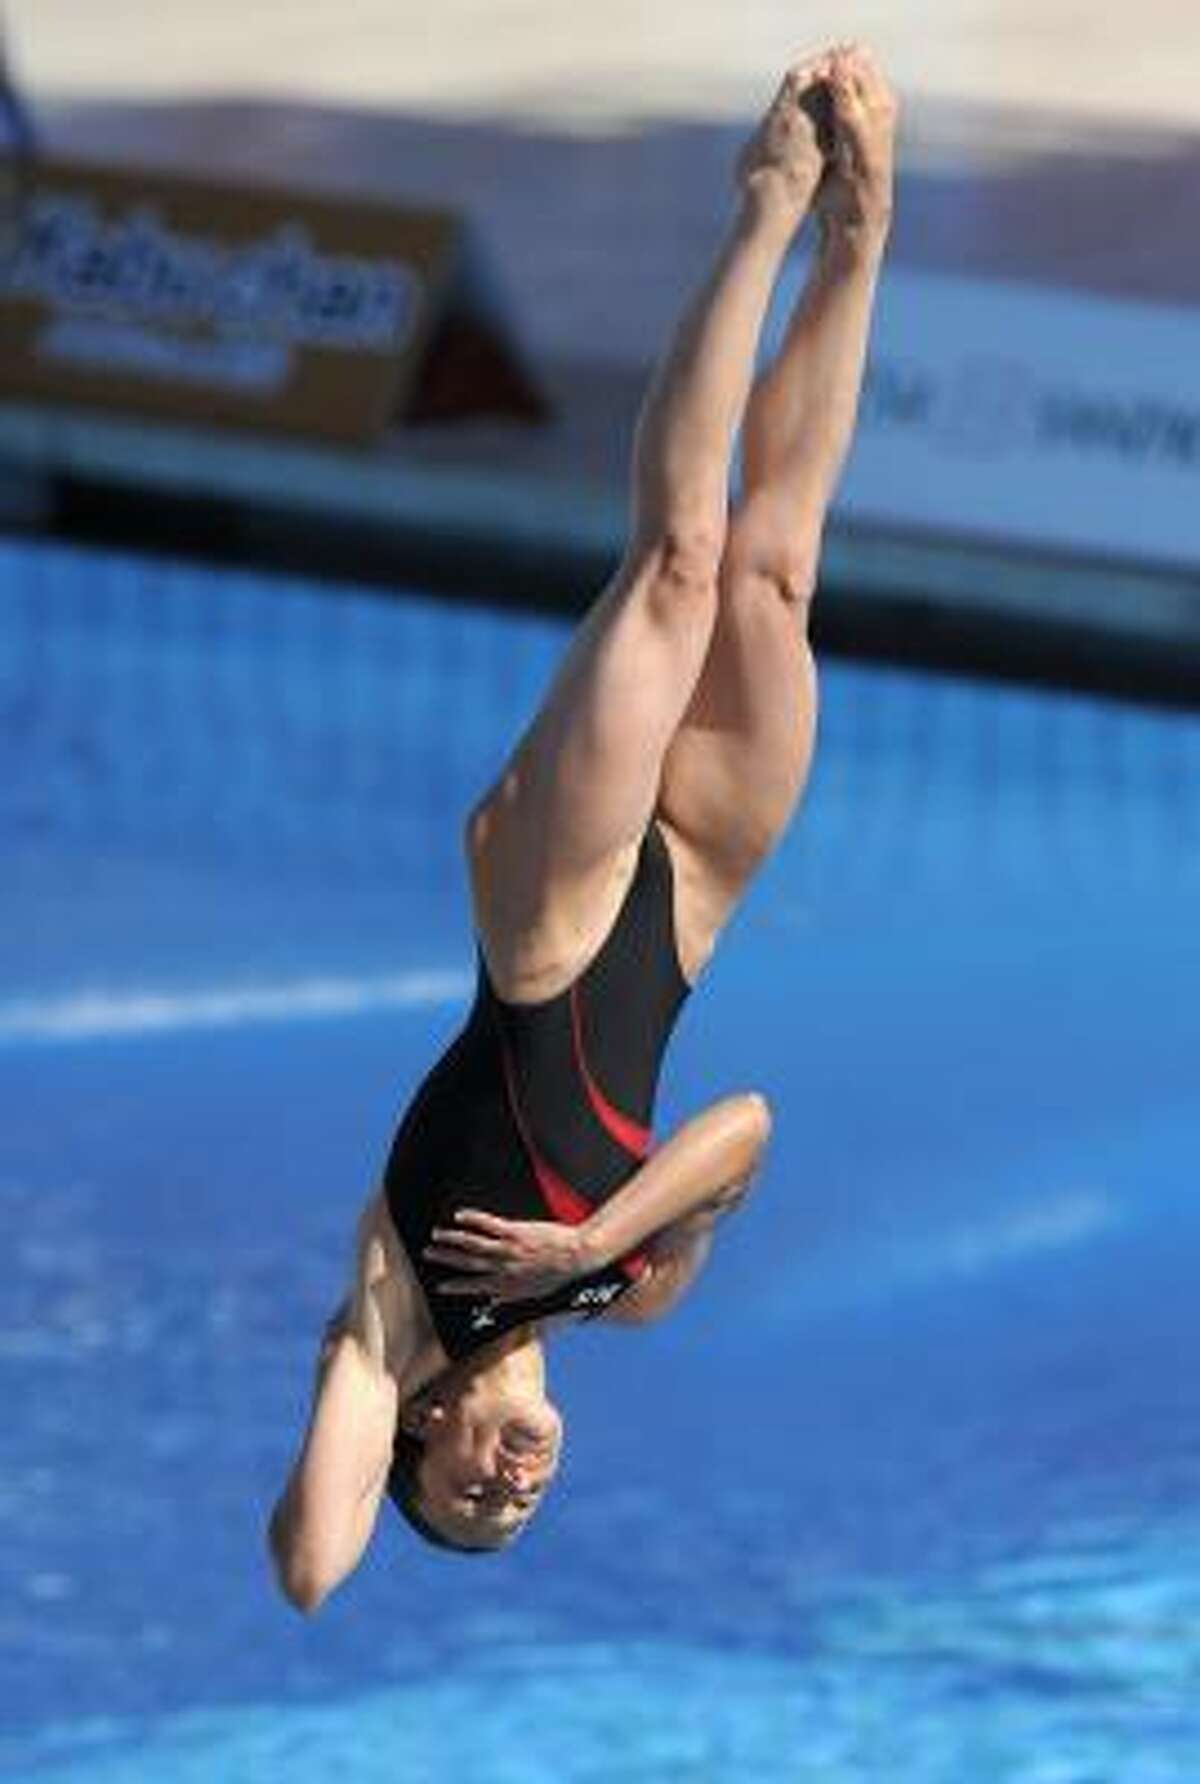 Julia Pakhalina, a former standout for the University of Houston, led from start to finish and totaled 325.05 points through the five-dive final.